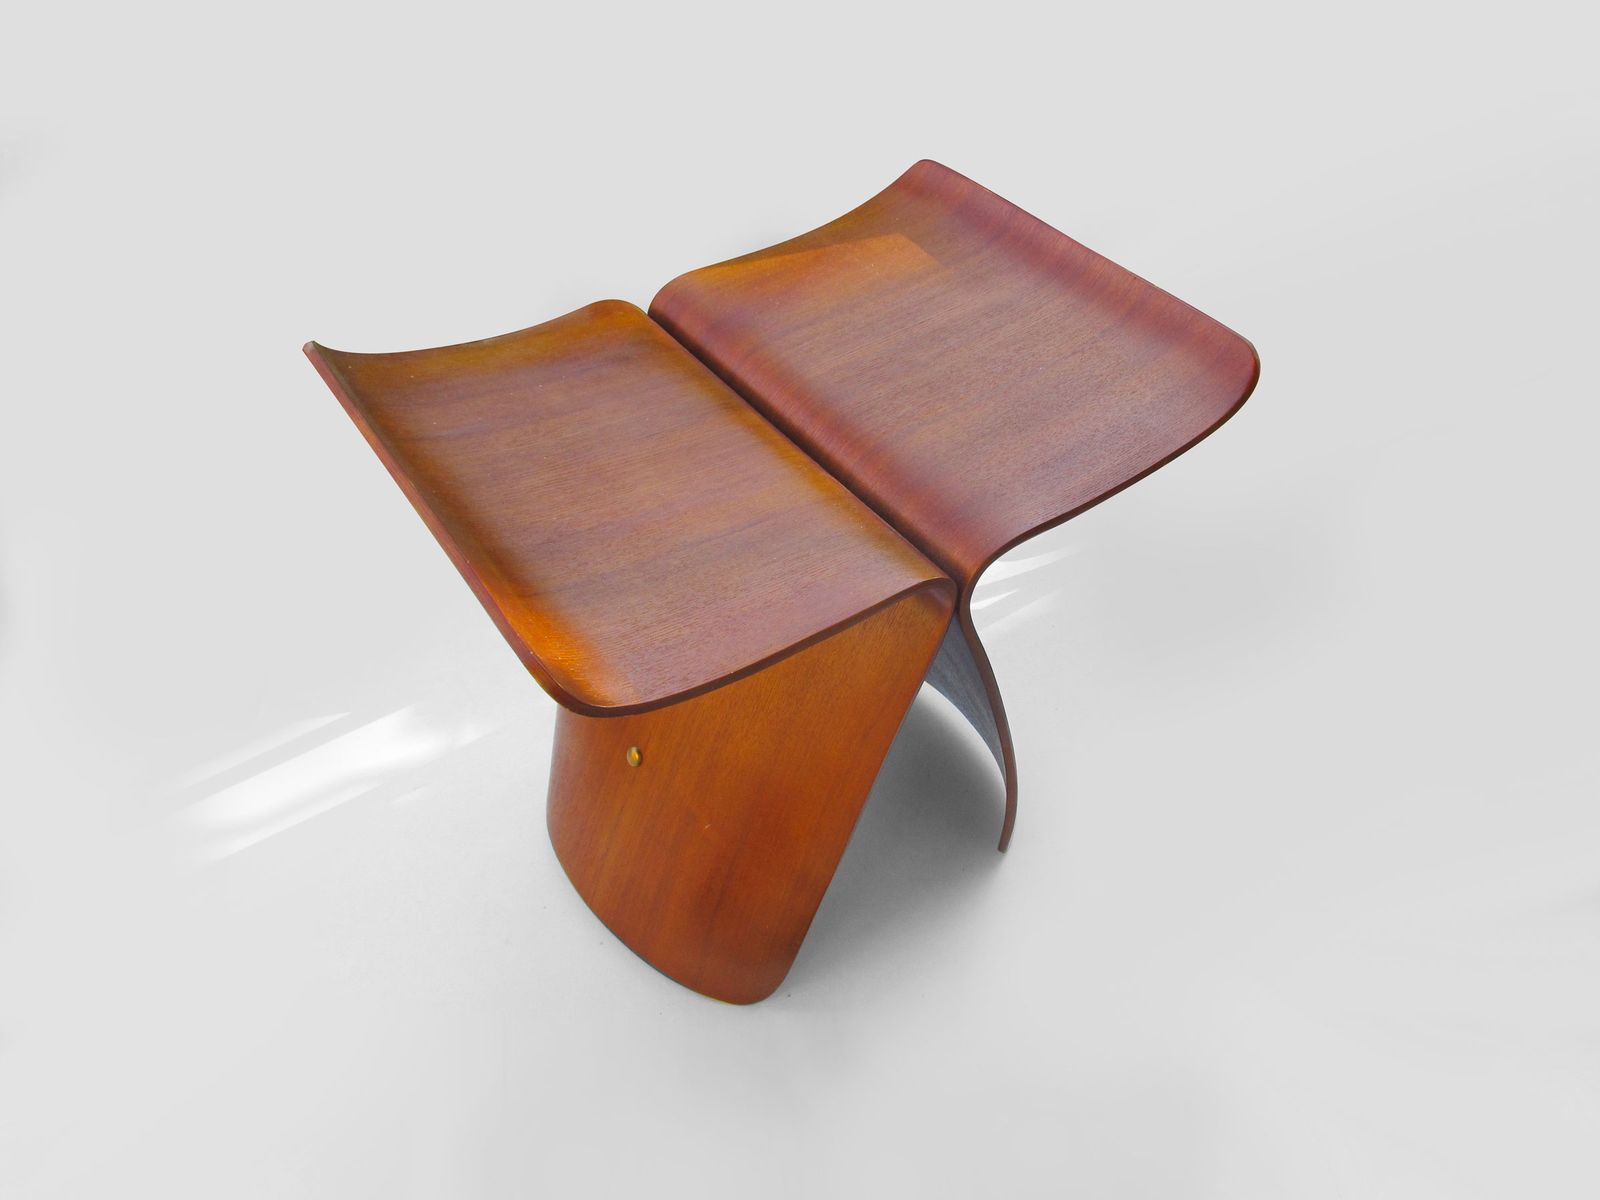 Butterfly chair sori yanagi - Butterfly Stool By Sori Yanagi For Tendo Mokko